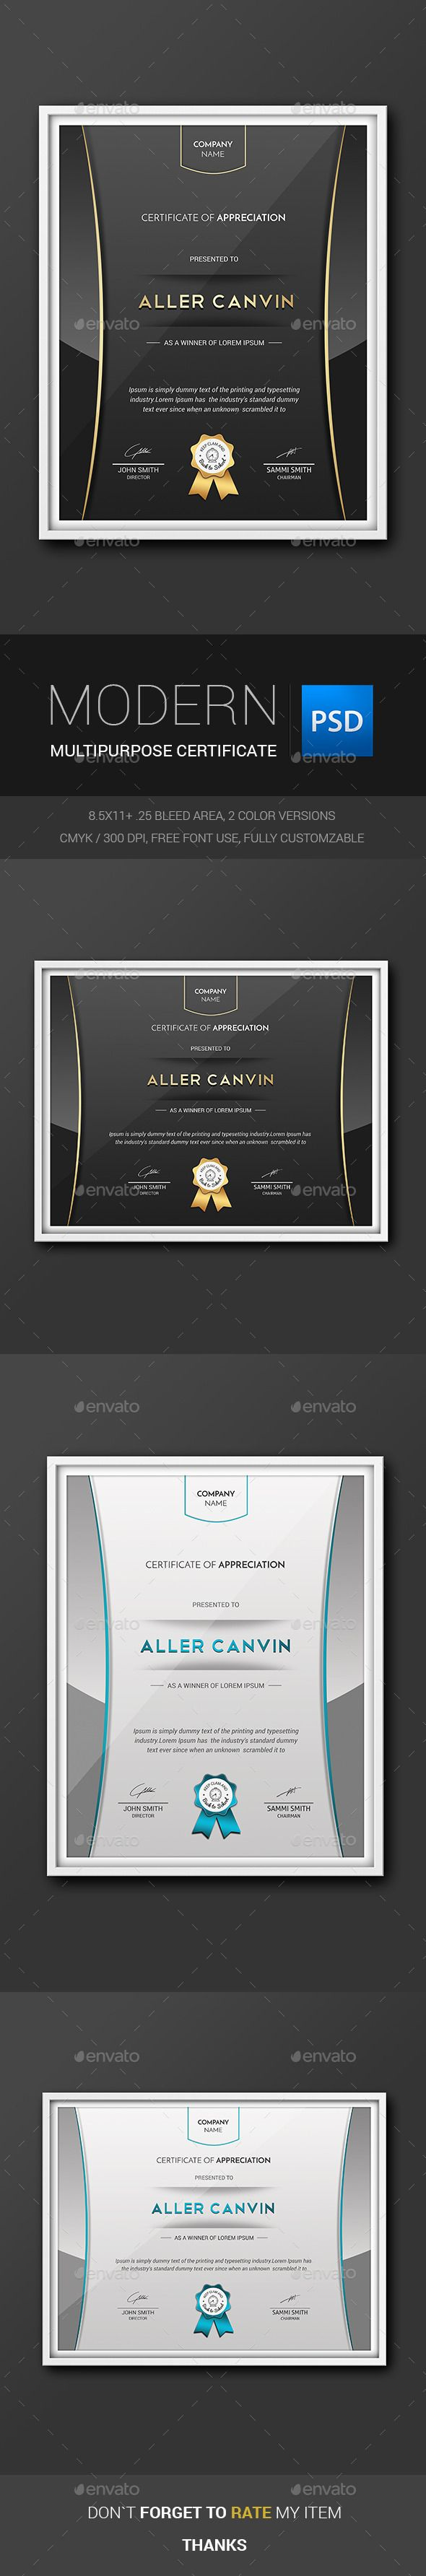 62 best award certificates images on pinterest plants creative certificate xflitez Gallery